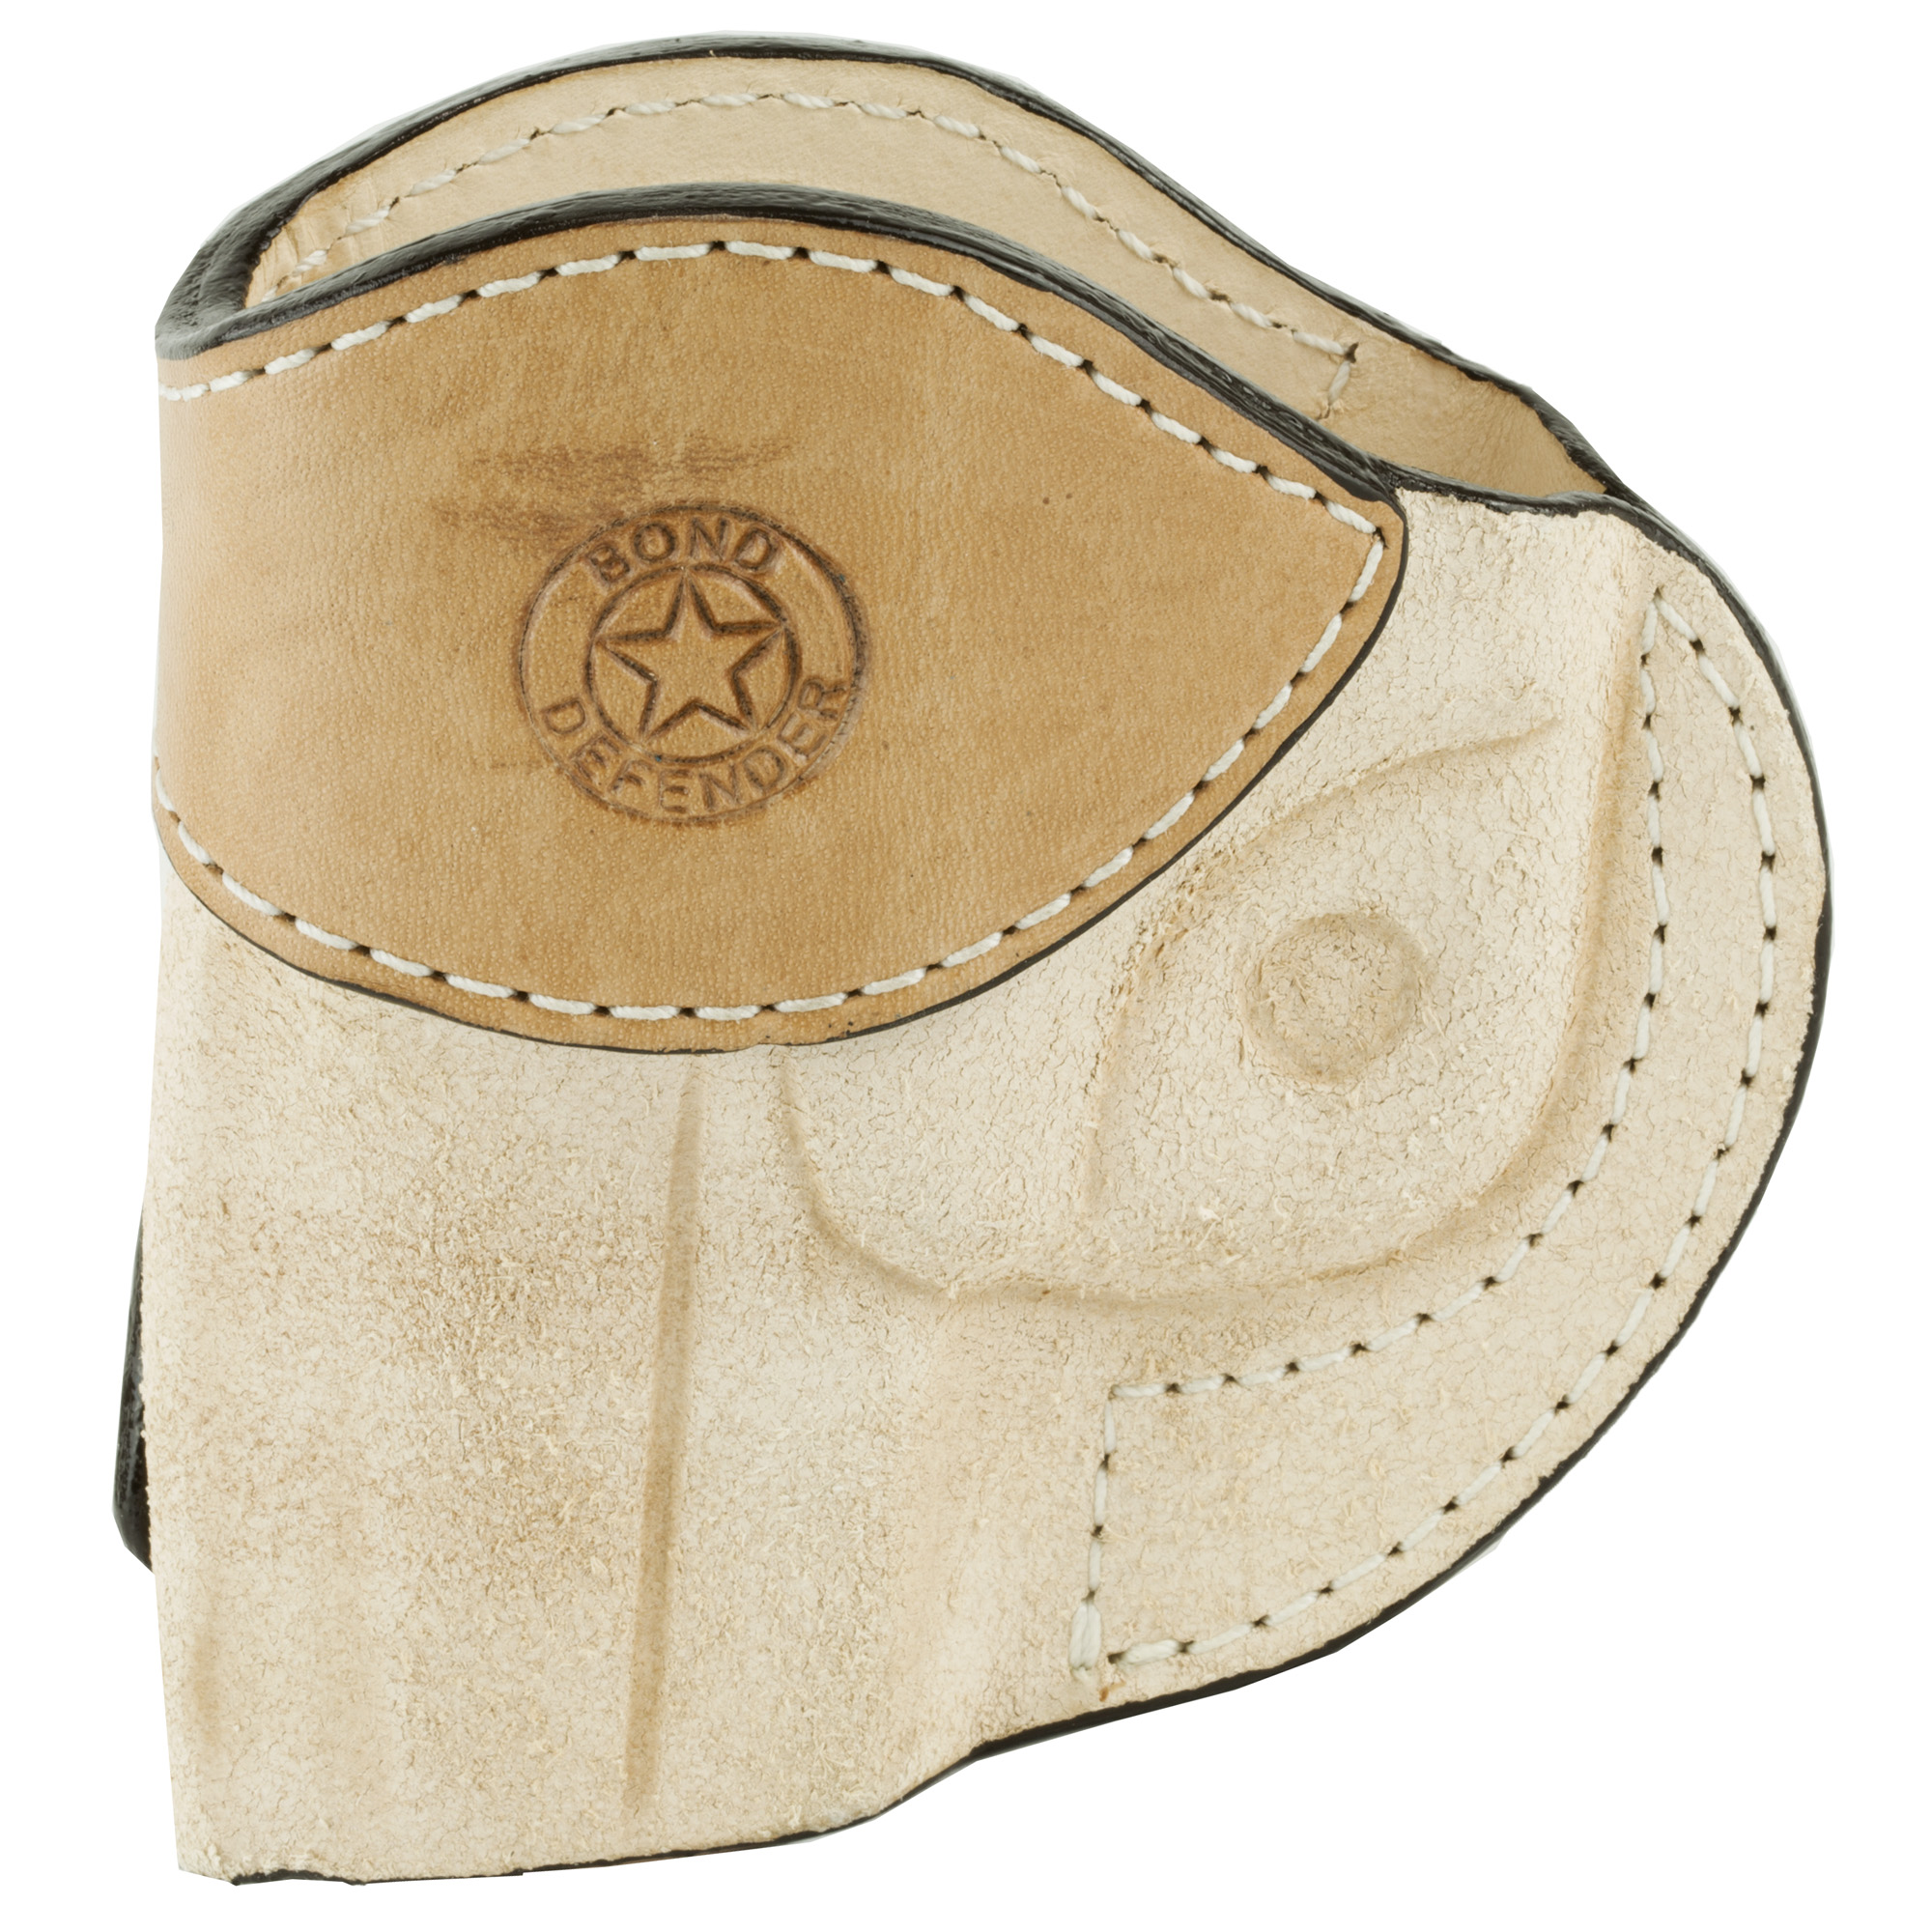 """Made from natural leather"""" this inside the waist band holster uses a stout metal belt clip for positive retention. Formed to the exact shape of your Snake Slayer IV. Suitable for conceal and carry as a small of the back"""" cross draw or strong hand presentation. These holsters are meant to be used with the Satin (smooth polished stainless steel) finished firearms."""